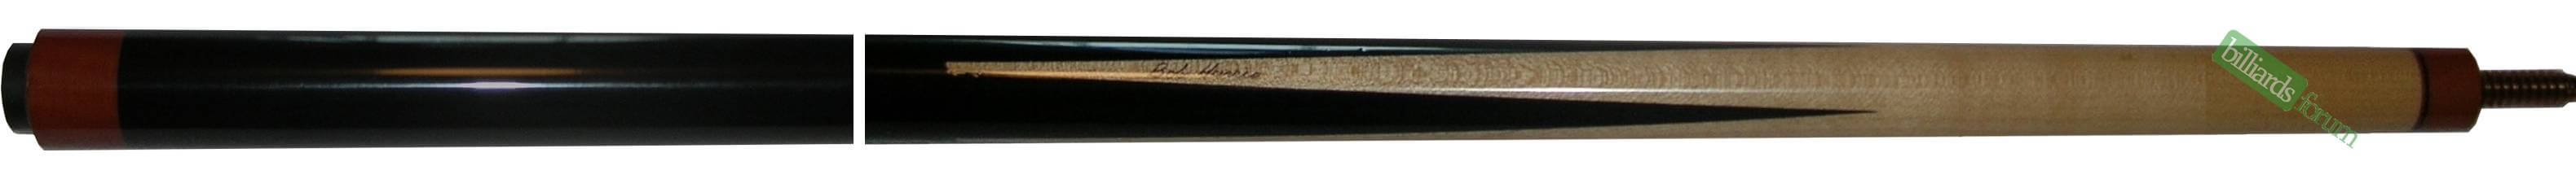 2007 Bob Harris Custom Gabon Ebony